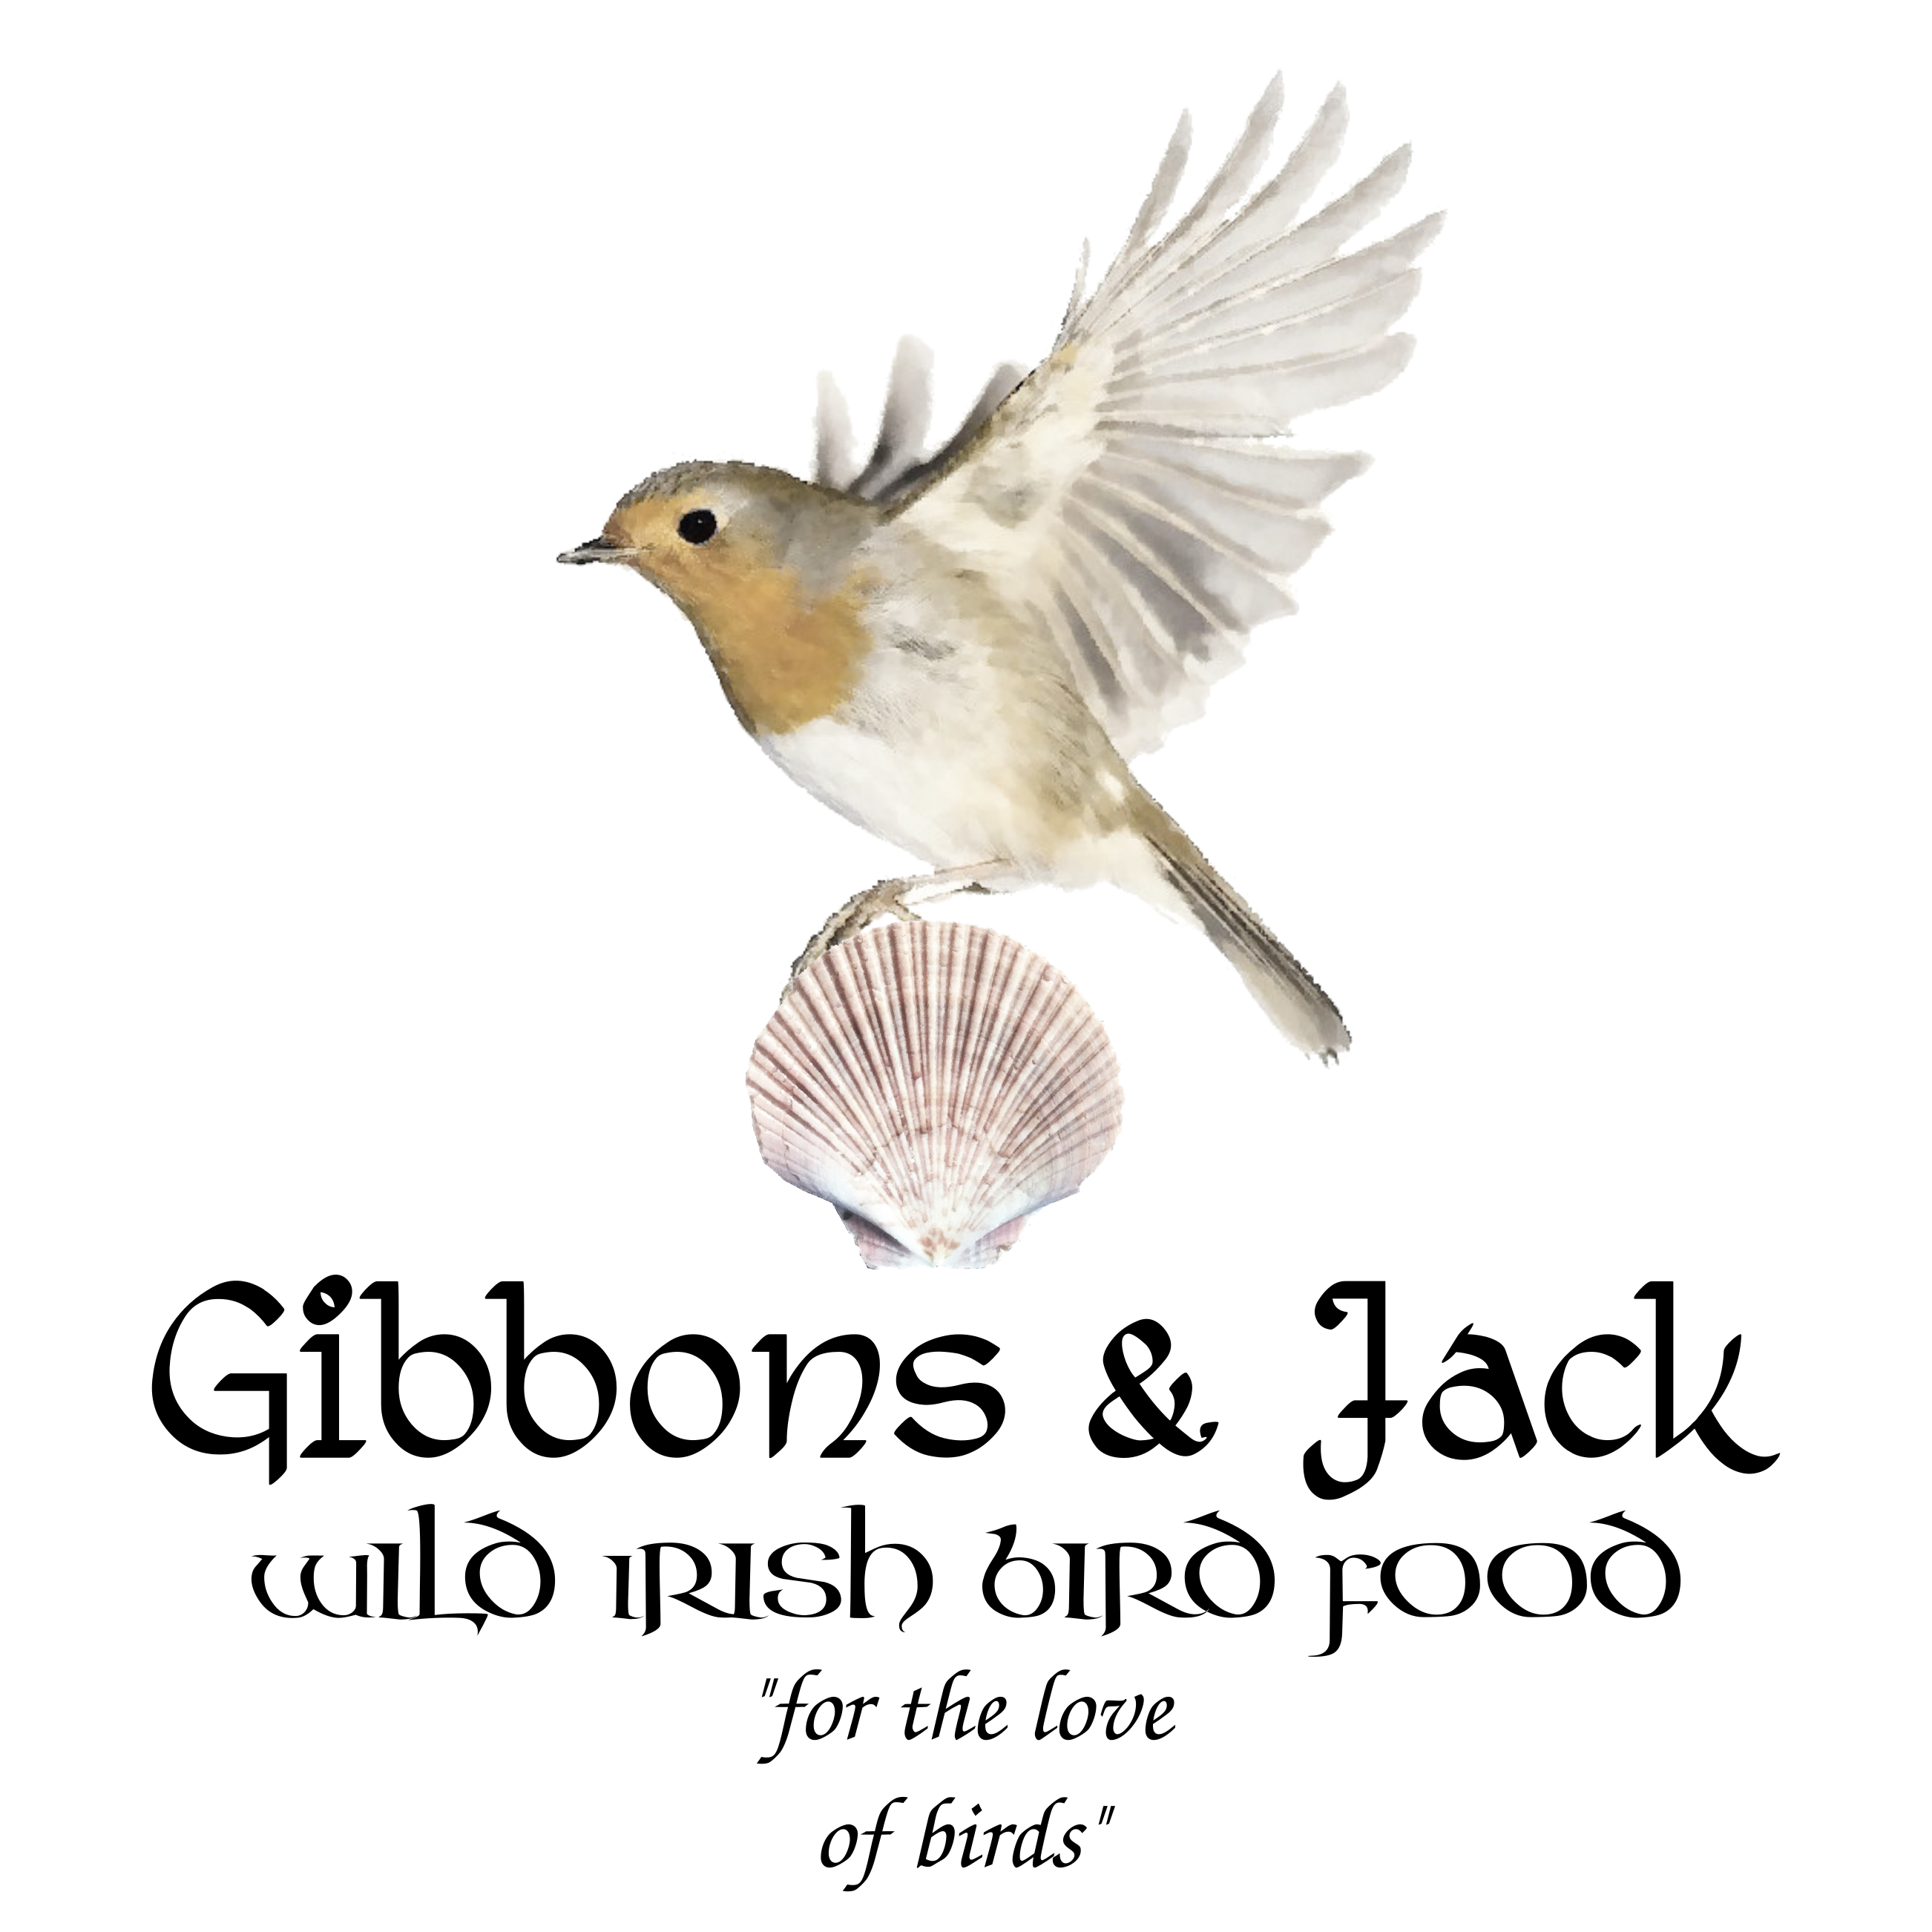 Wild Irish Bird Food Supplies